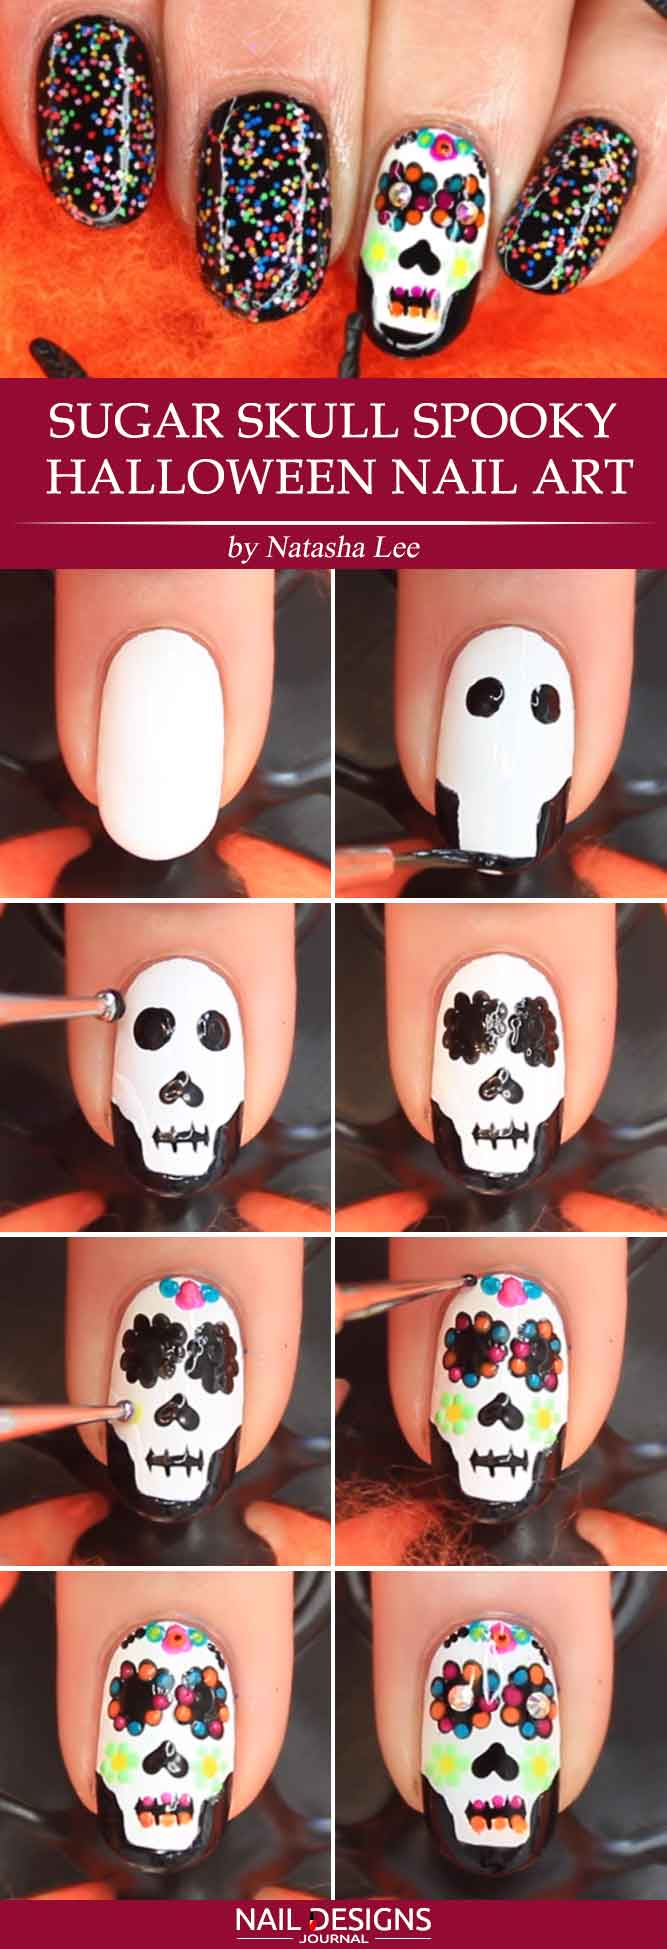 sugar skull halloween nail art